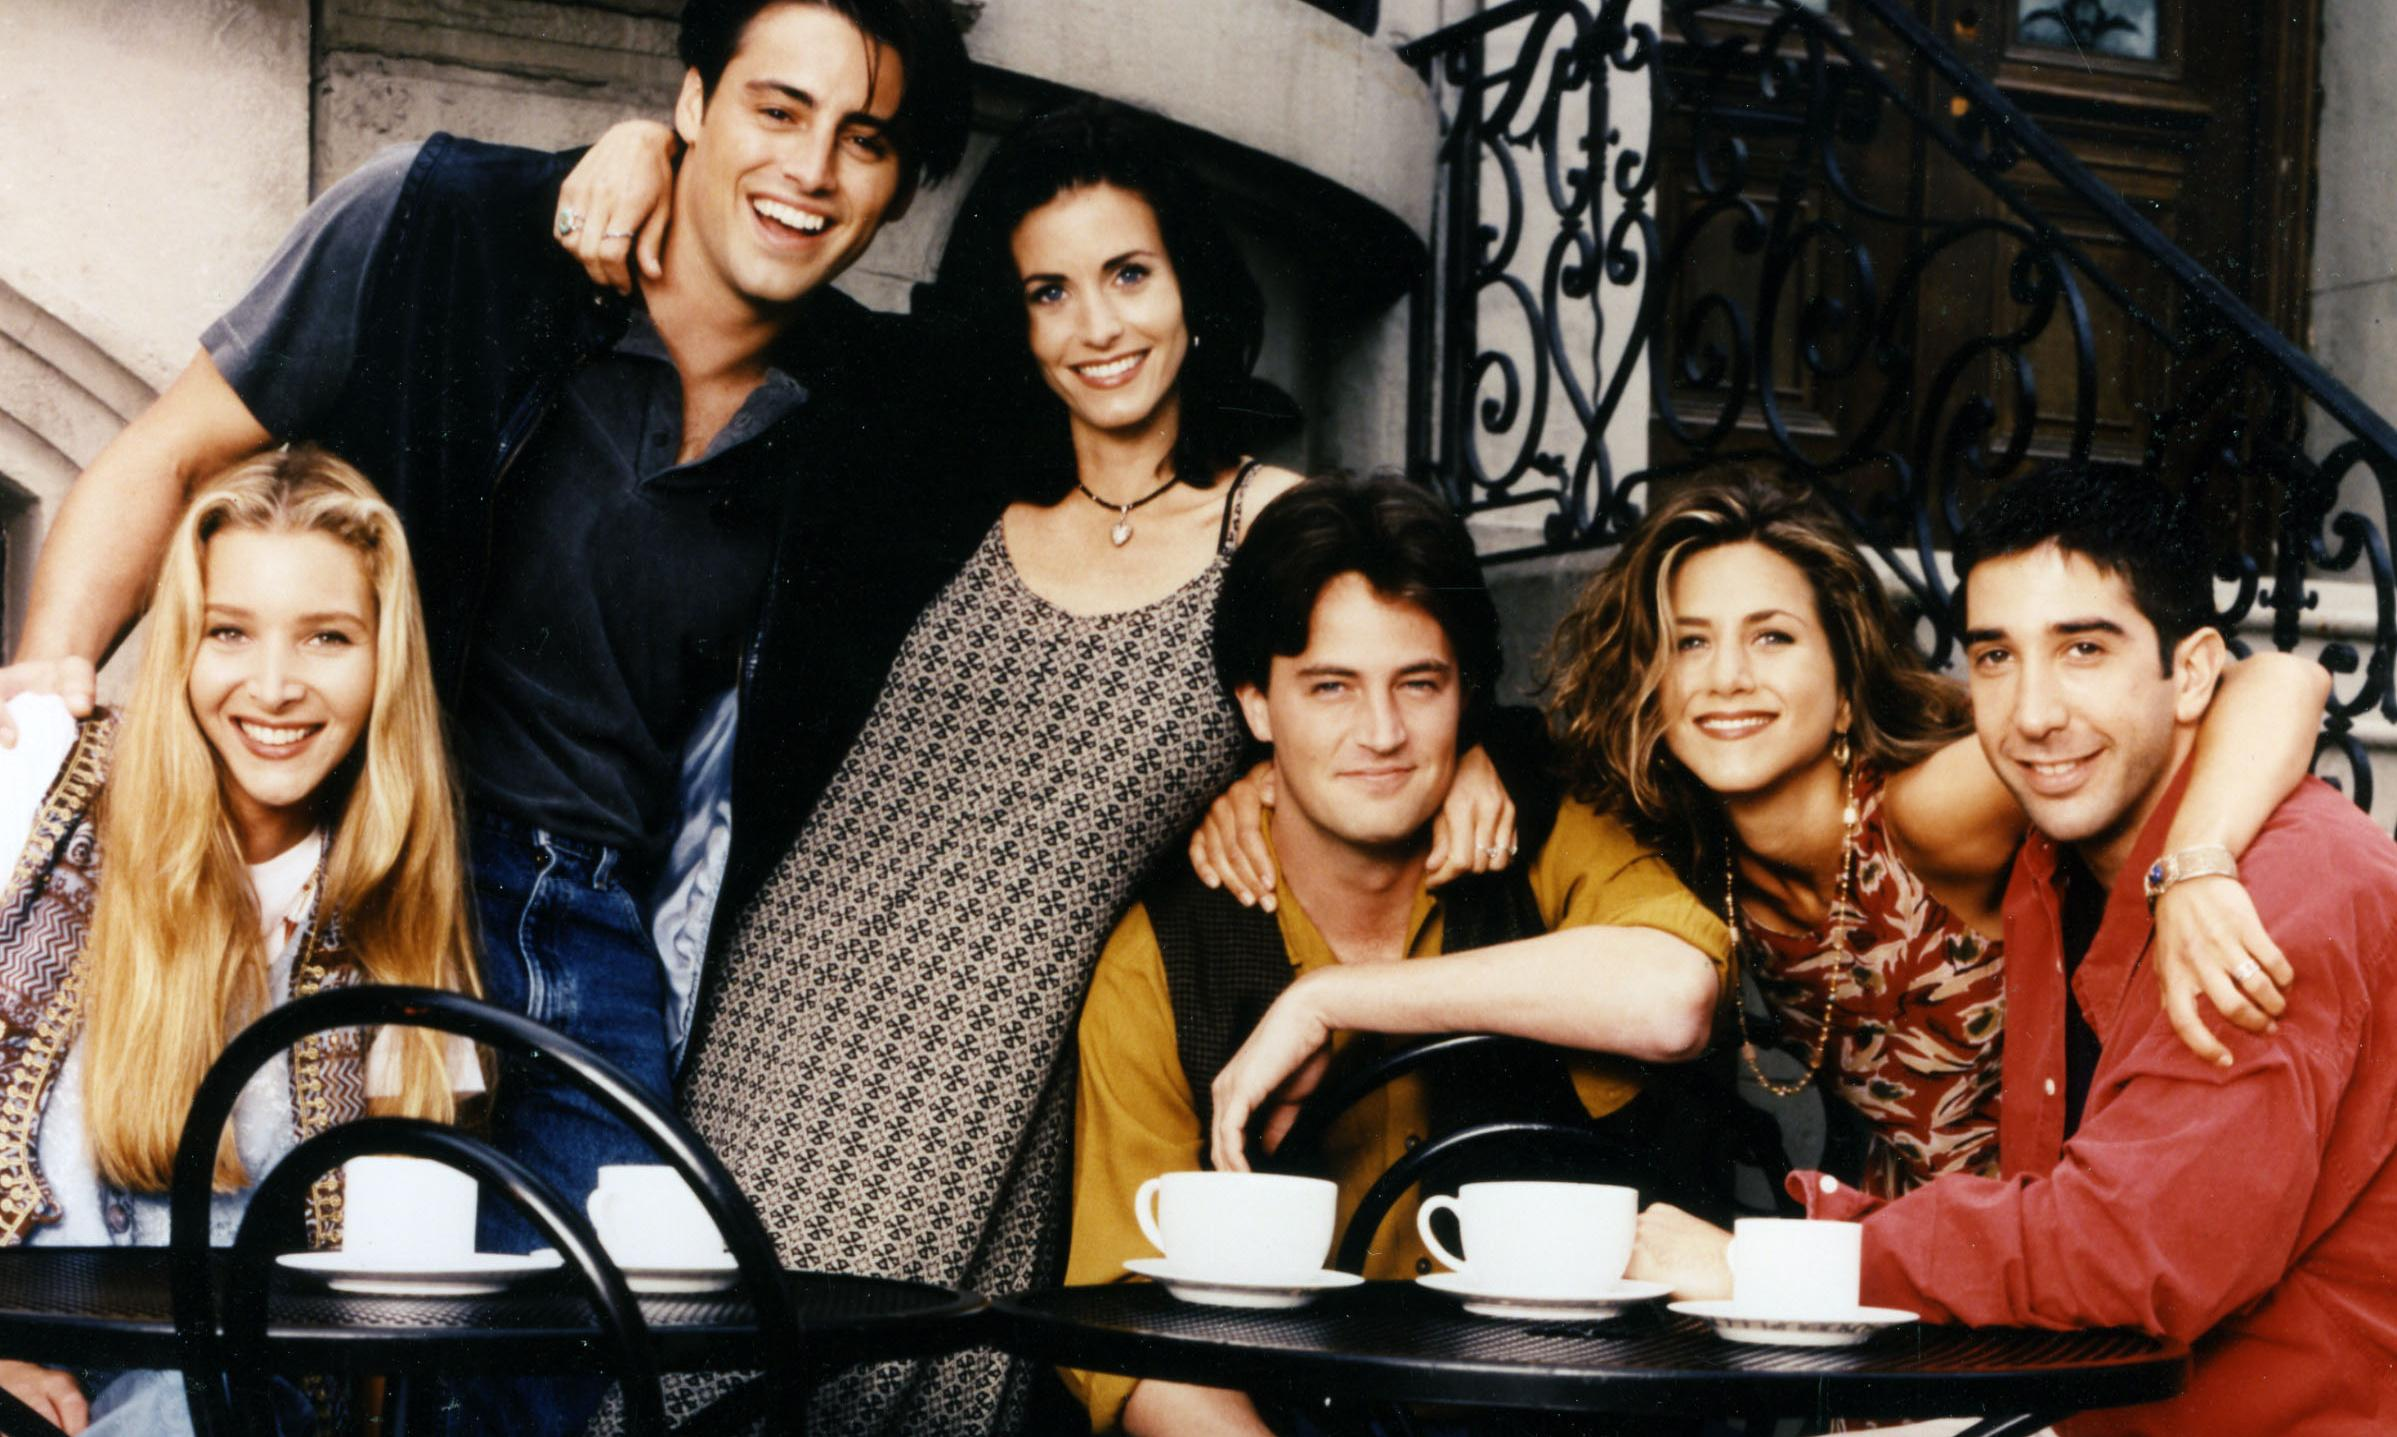 Friends is social history – when young people bought coffee without guilt